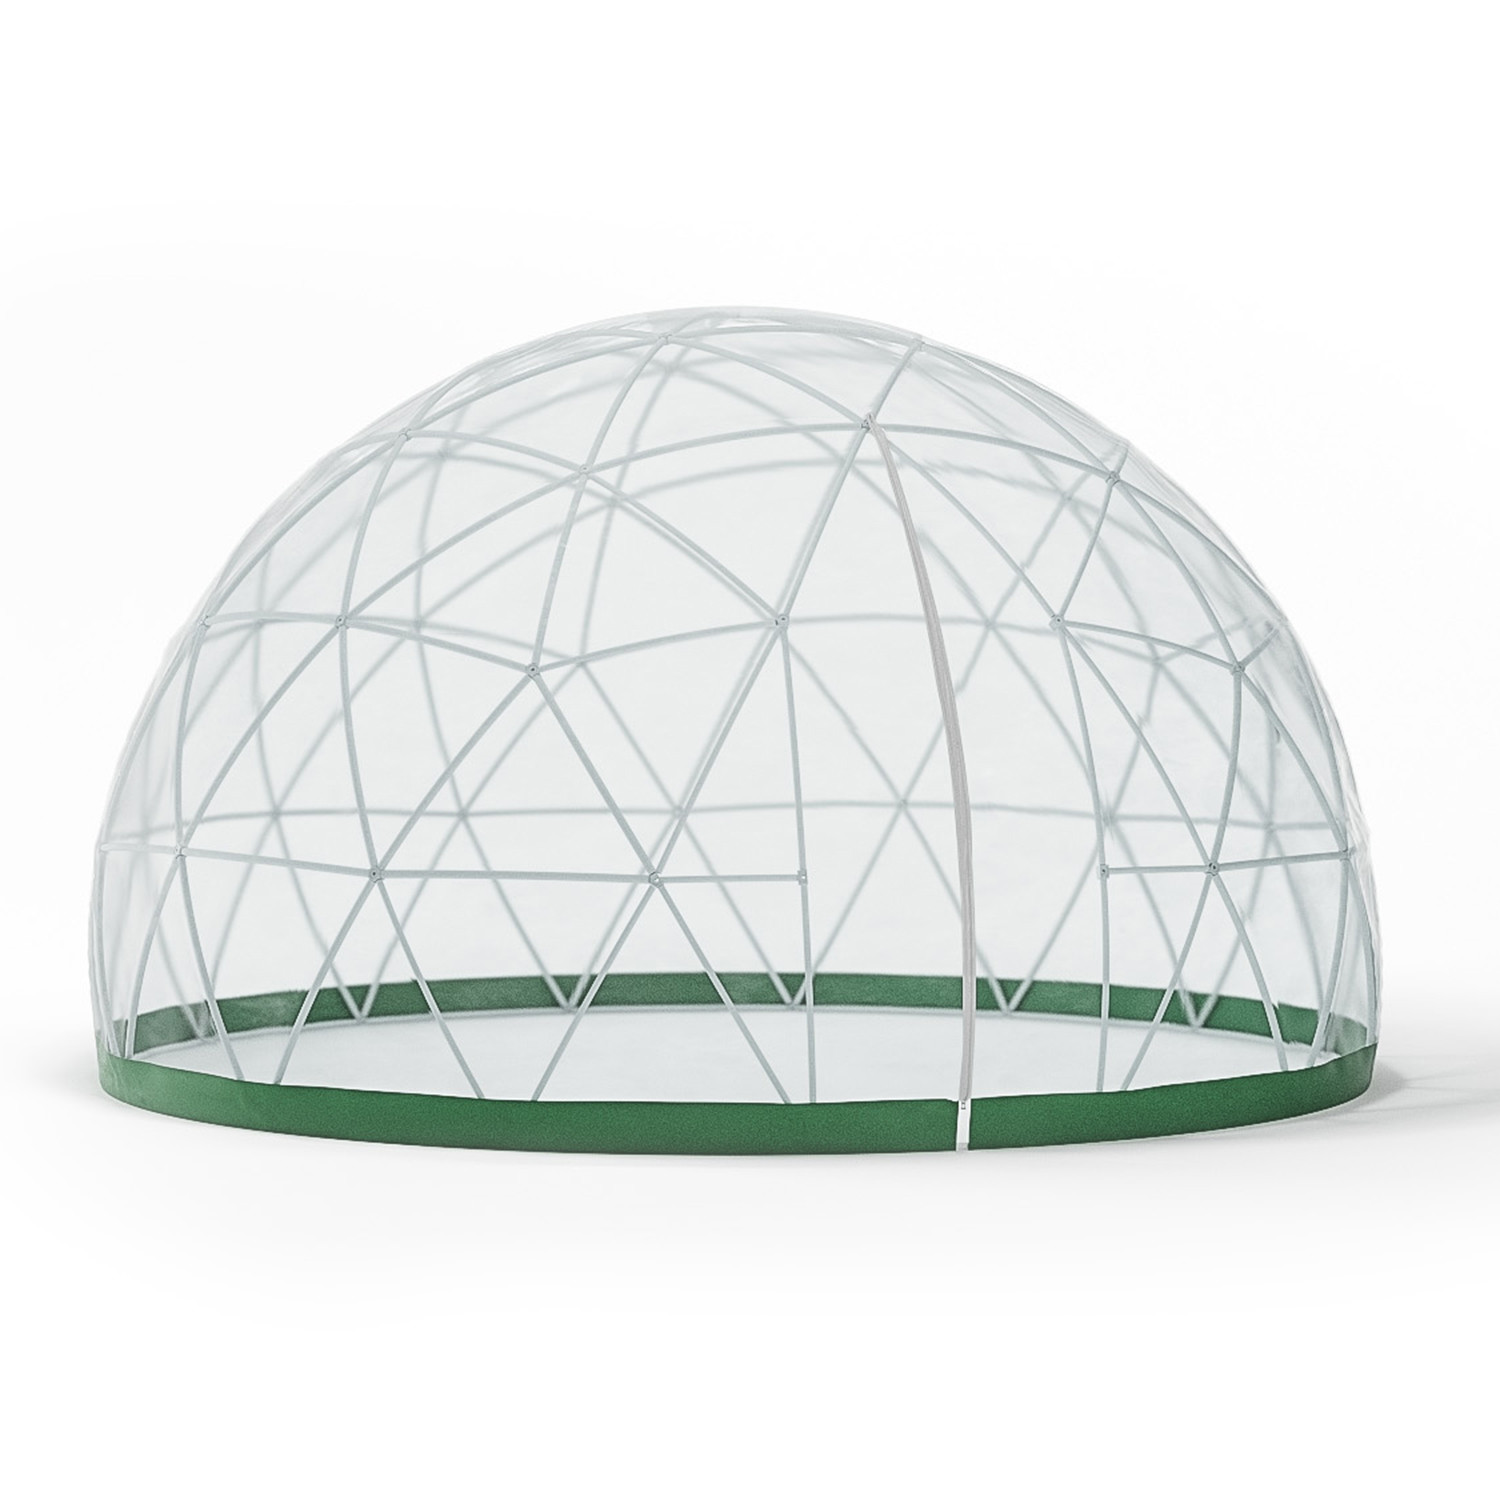 Garden igloo garden igloo touch of modern for Igloo de jardin